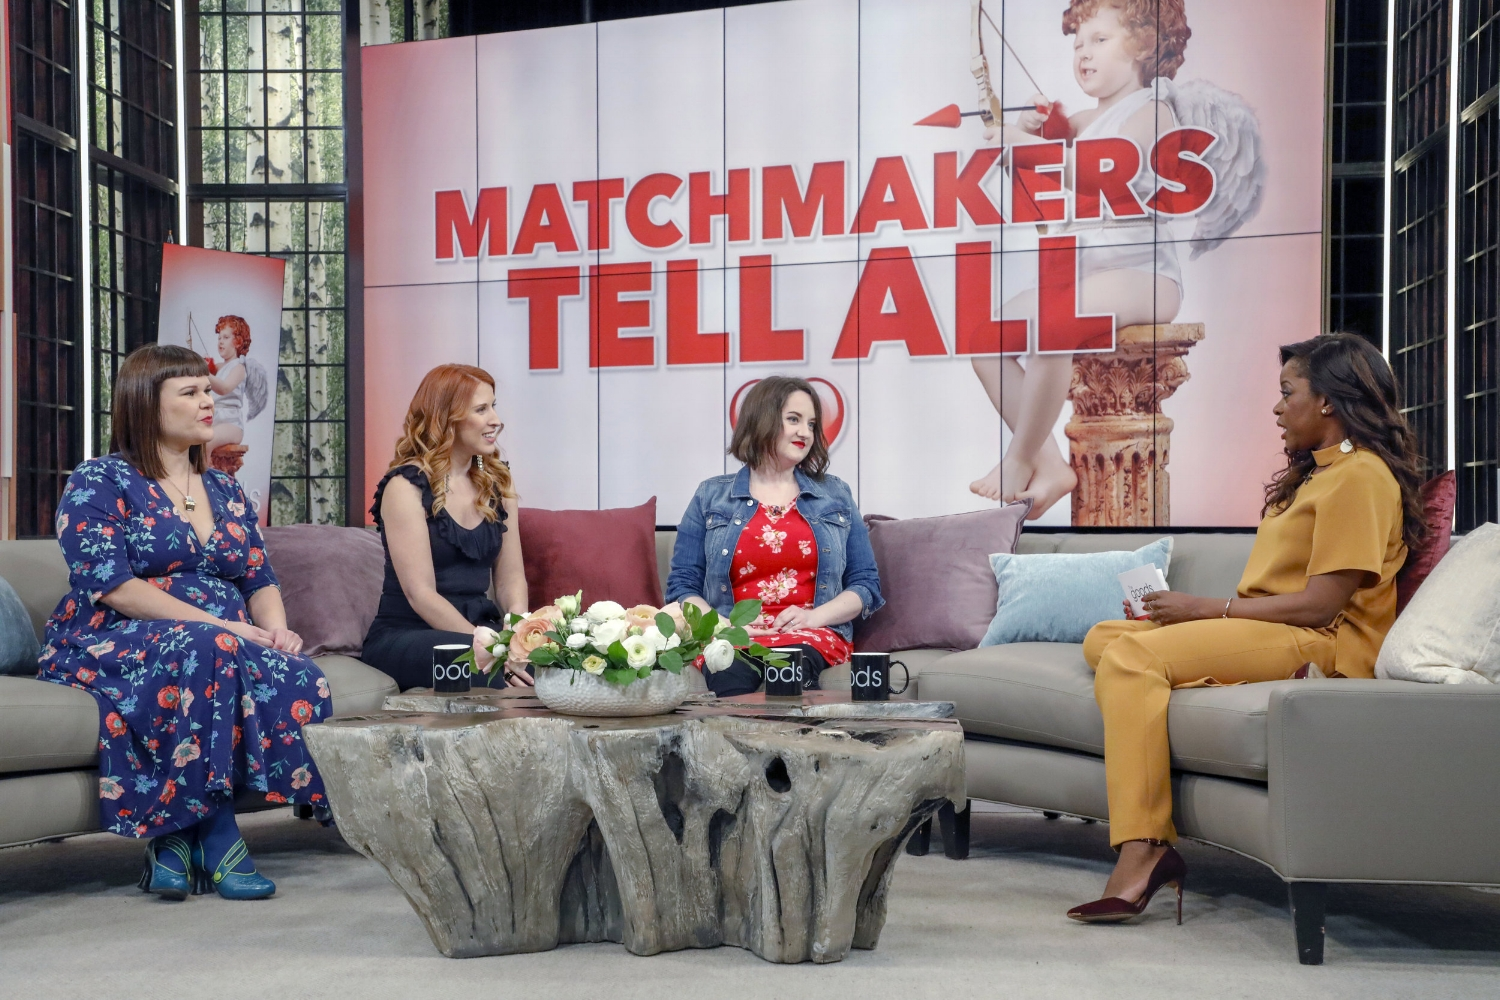 Matchmakers Sofi Papamarko, Lee-Anne Galloway, Claire AH and Andrea Bain dish on The Goods.